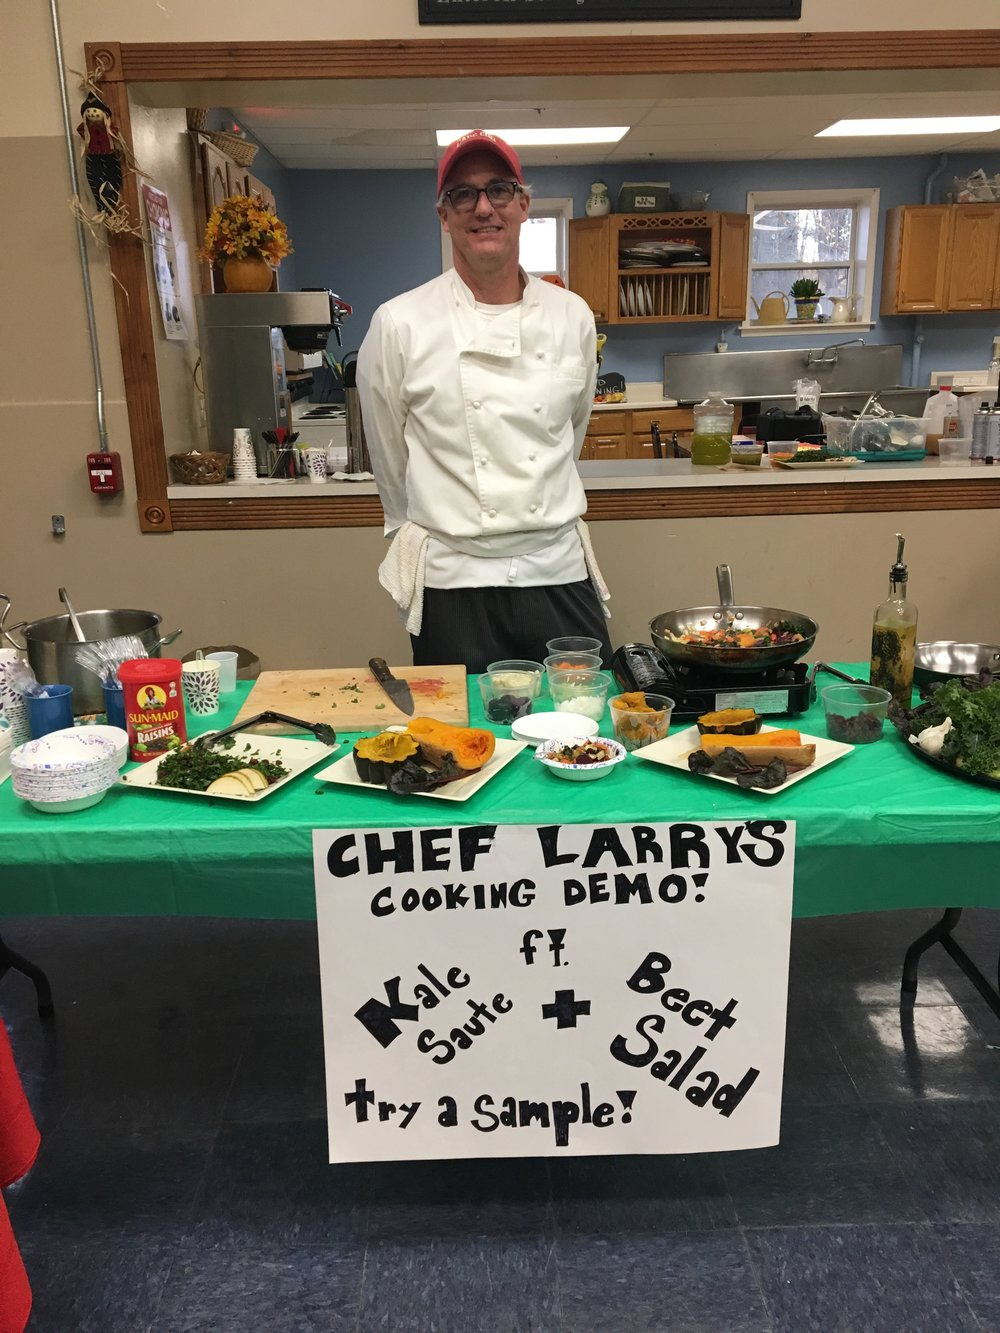 Chef Larry did some great cooking demonstrations for everyone!